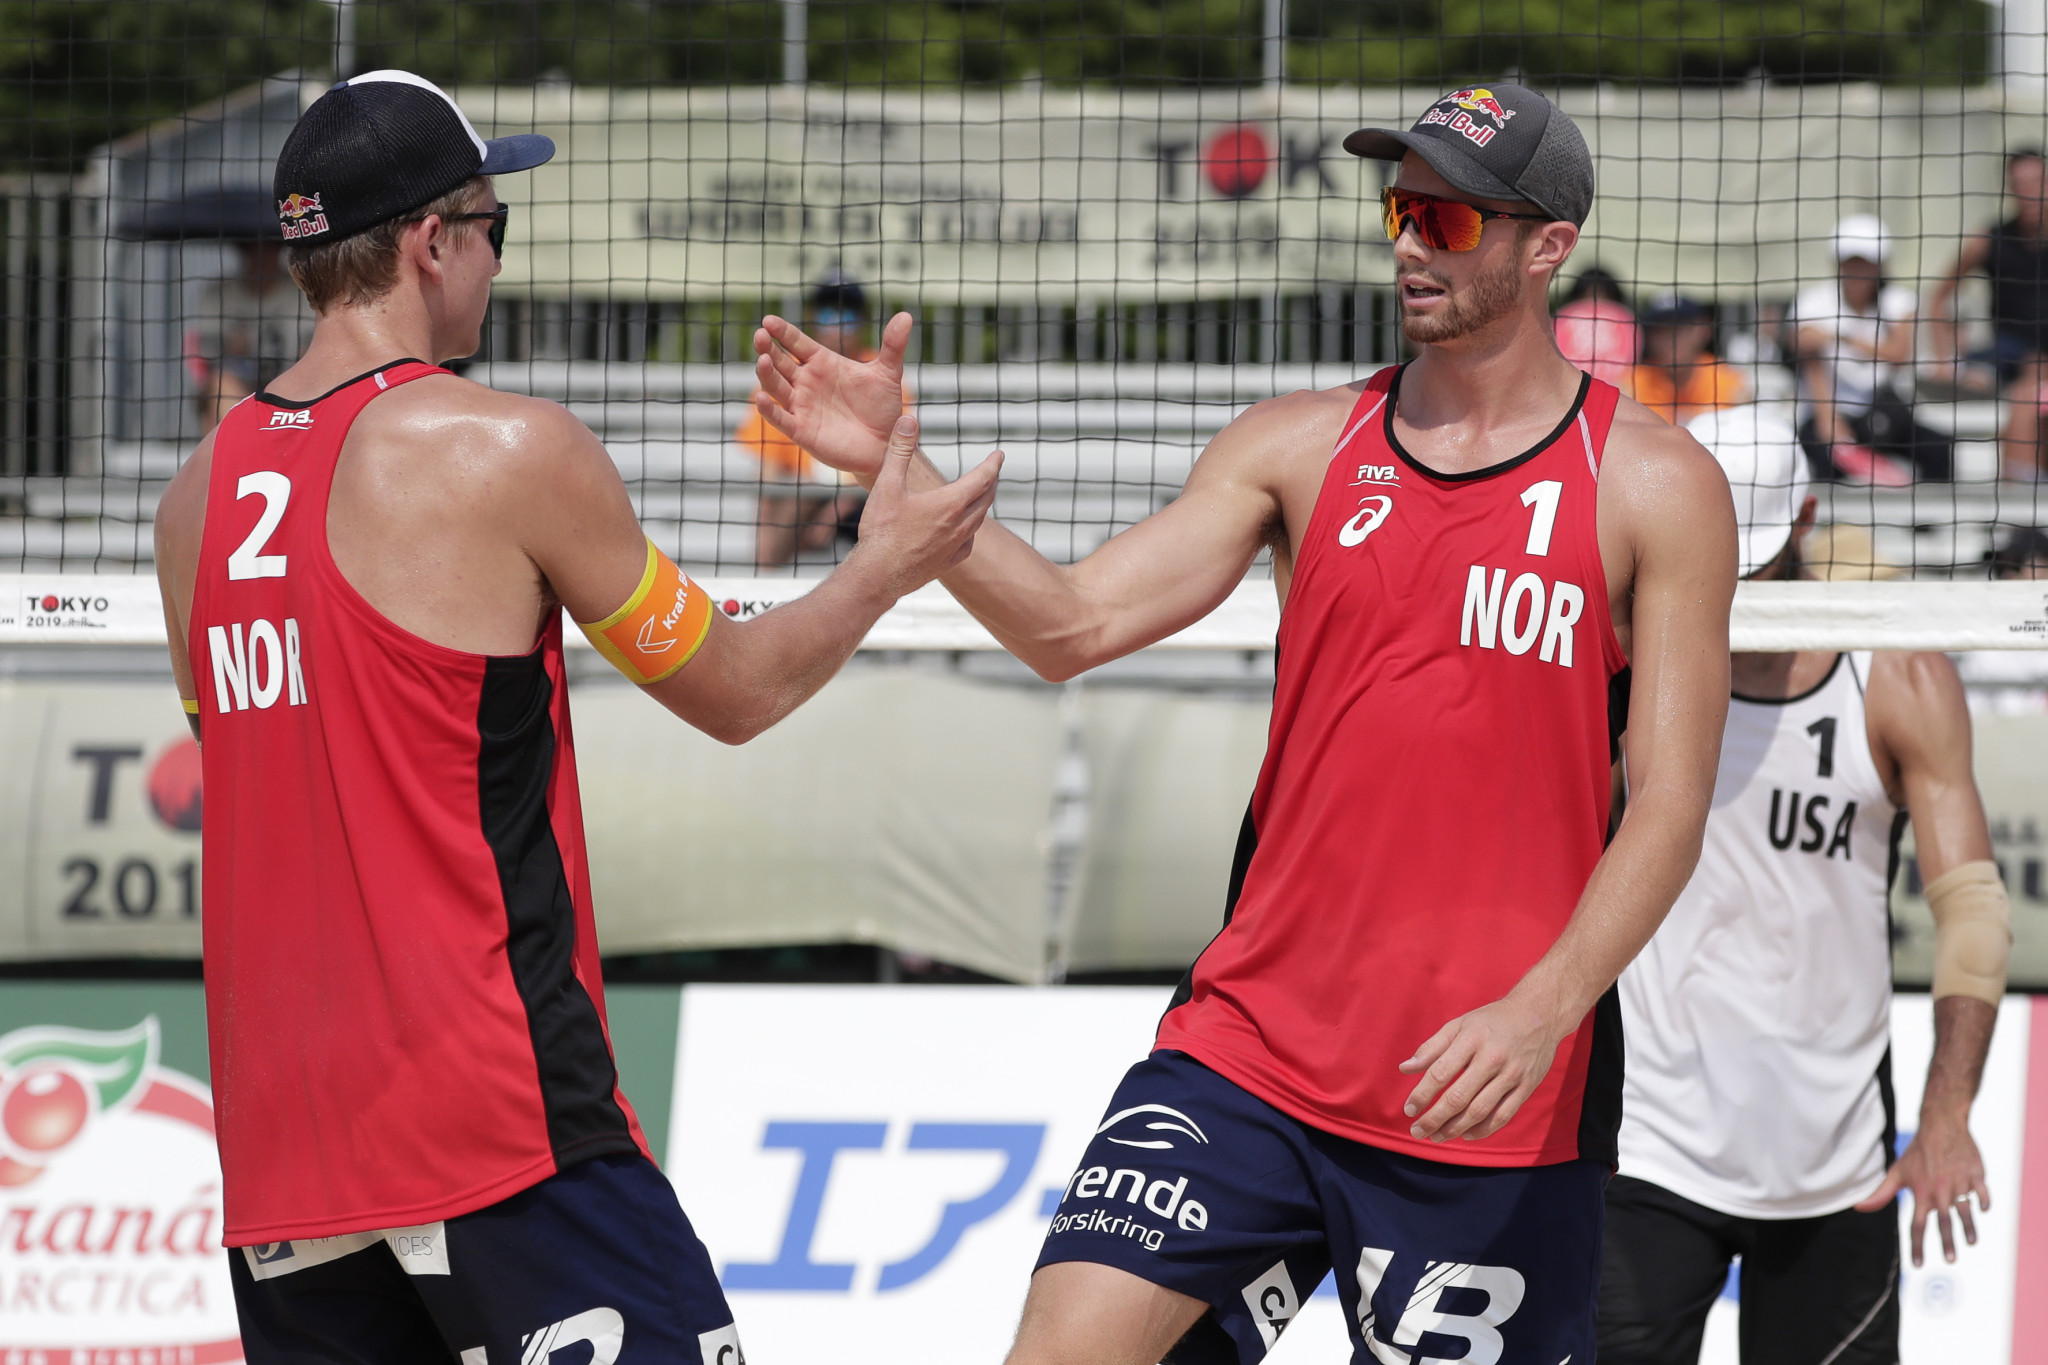 Mol and Sørum win Cancun opener in first FIVB World Tour match together in 18 months